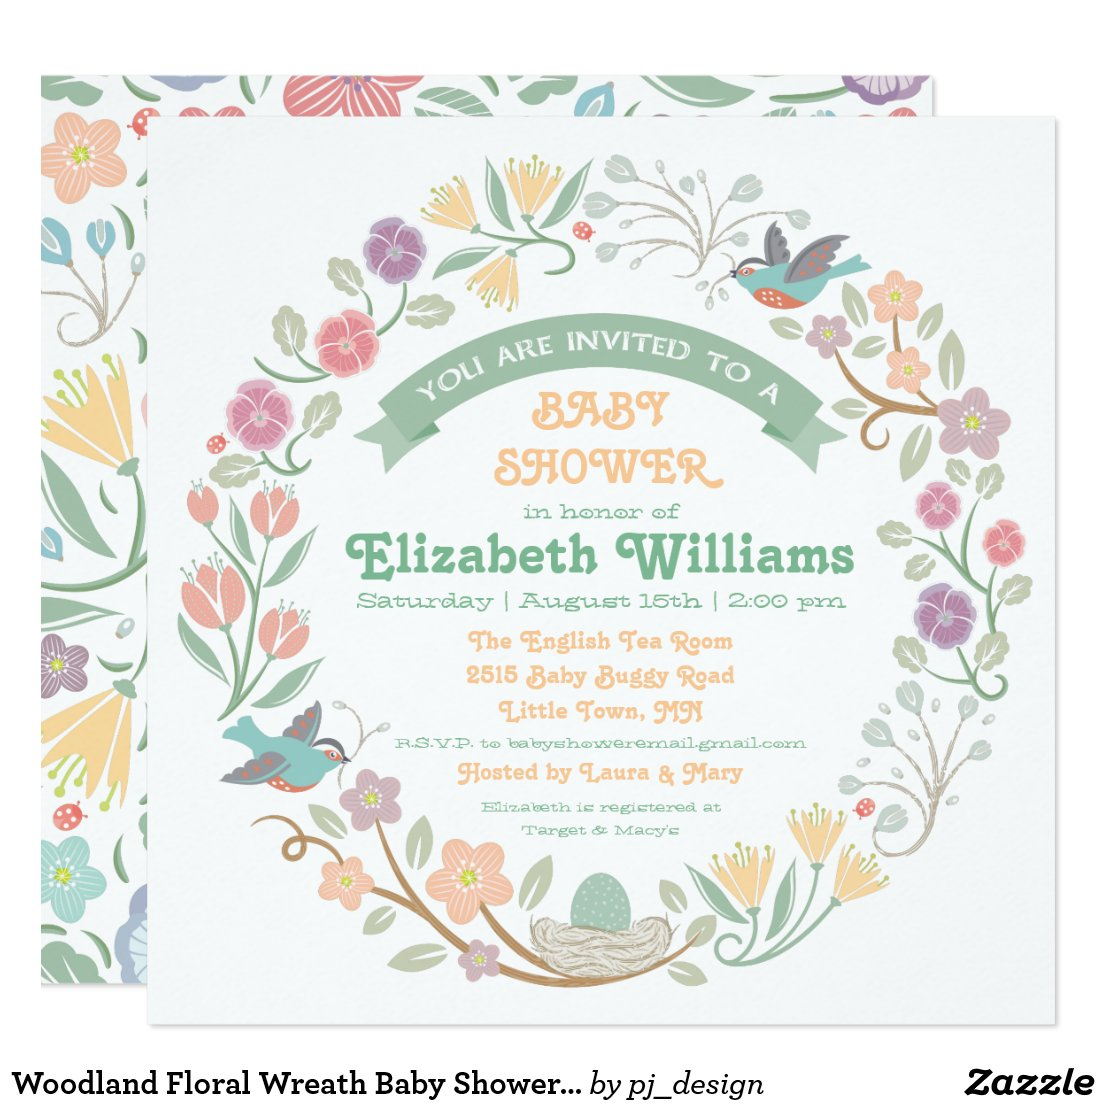 Woodland Floral Wreath Baby Shower Invitation